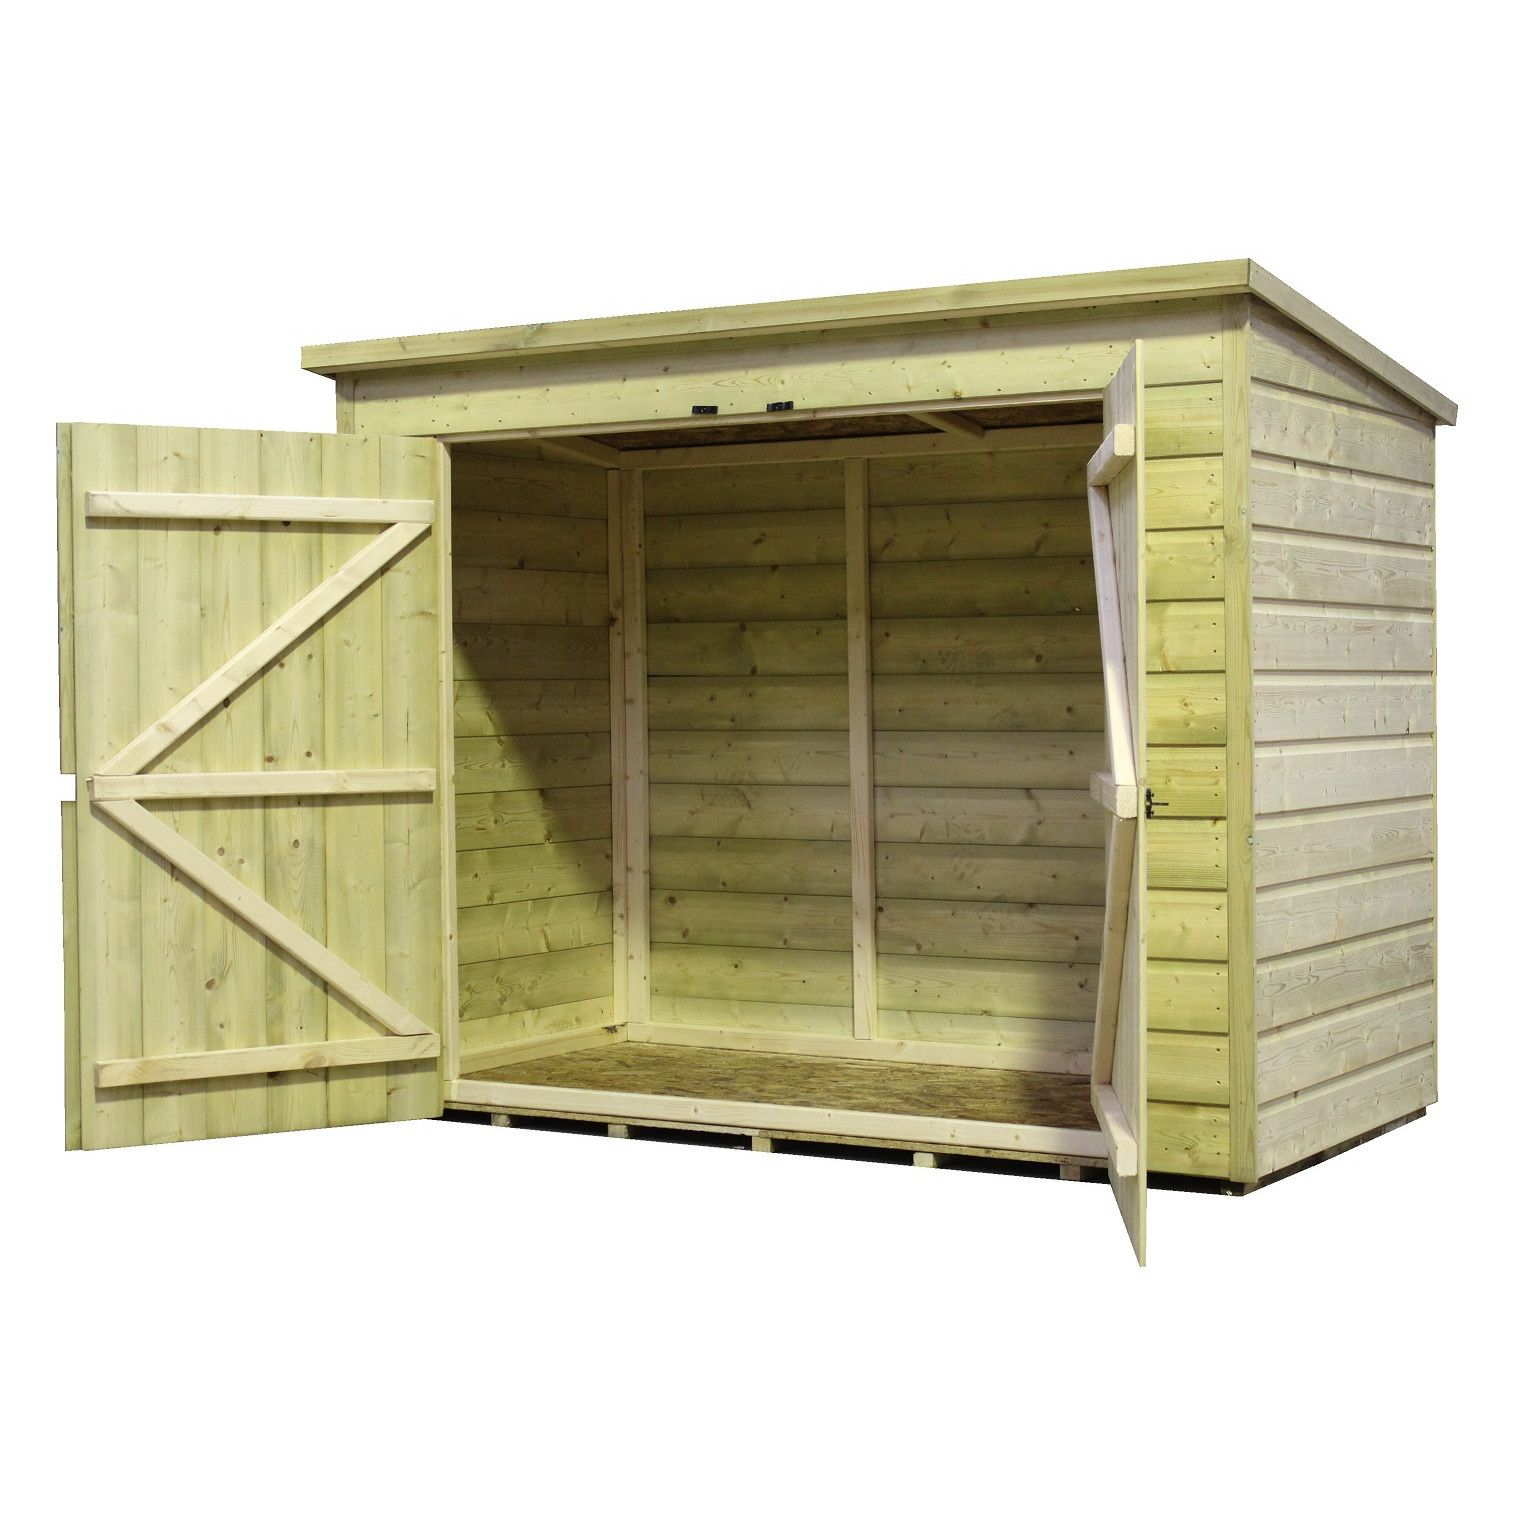 empire sheds ltd 7 x 4 wooden bike shed - Garden Sheds 7 X 3